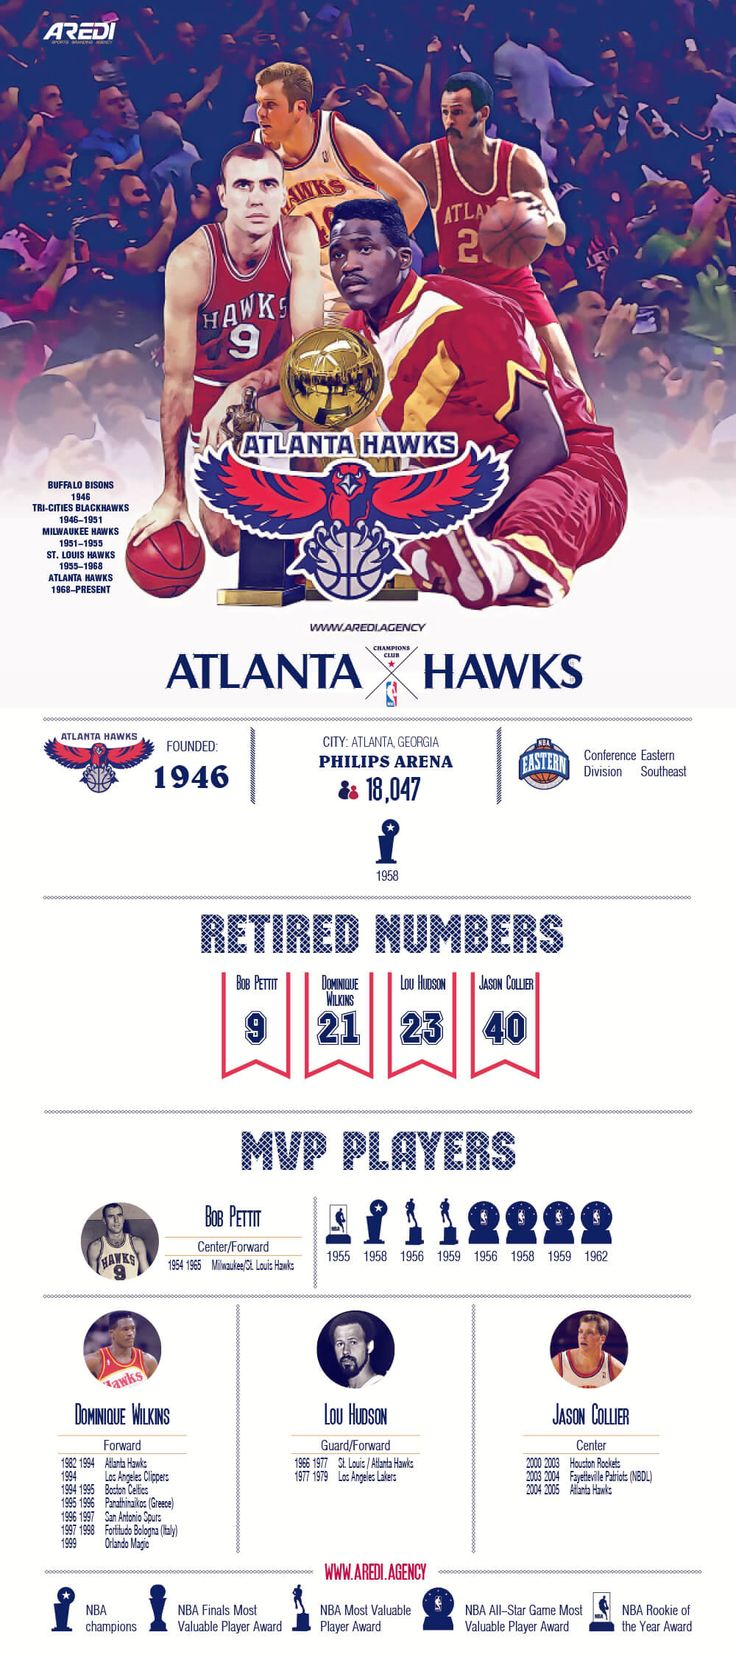 The best players in the history of the Atlanta Hawks, Bob Pettit, Dominique Wilkins, Lou Hudson, Jason Collier, infographic, art, sport, create, design, basketball, club, champion, branding, NBA, MVP legends, histoty, All Star game, #sportaredi